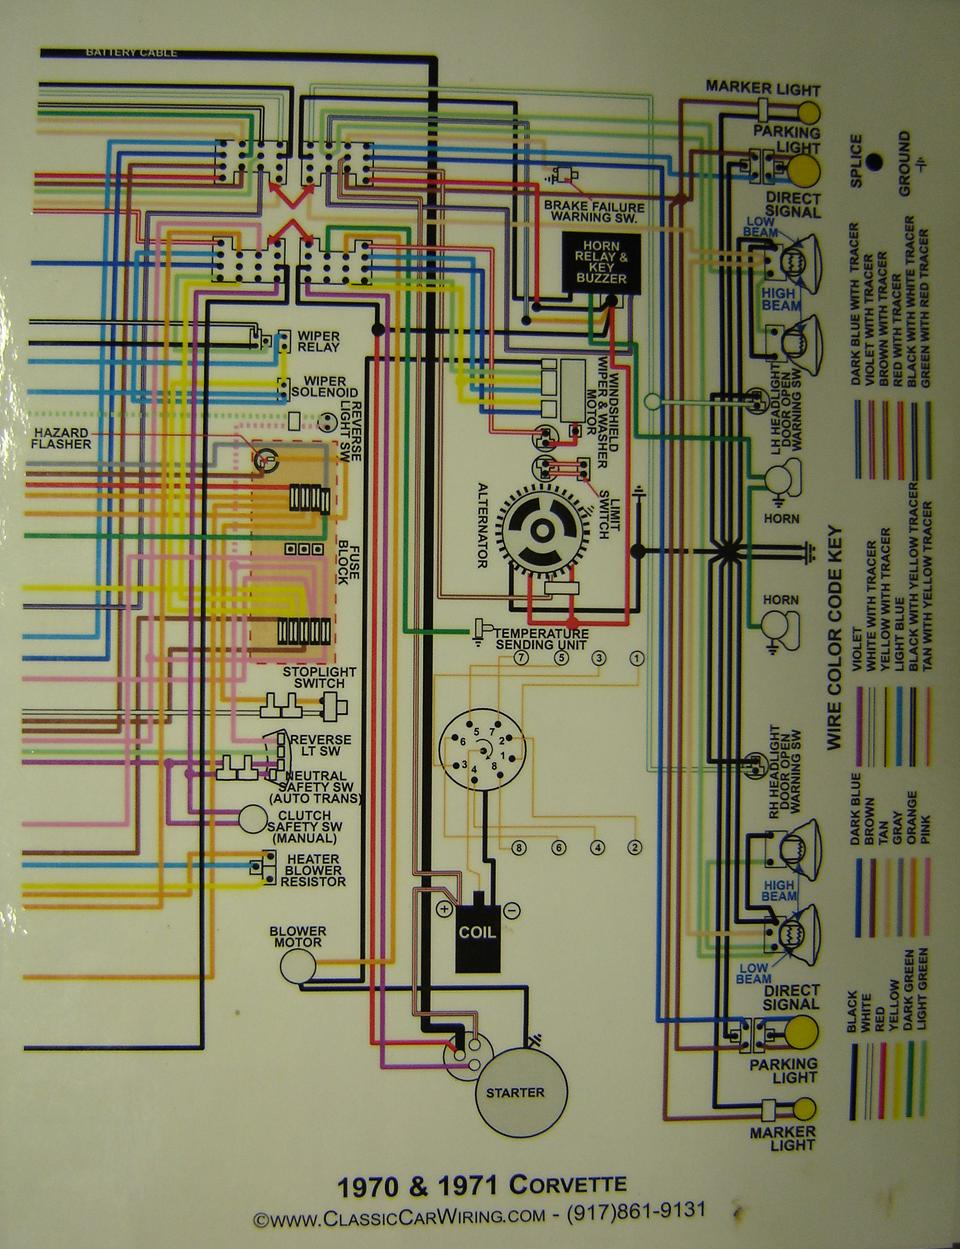 Corvette Wiring Guide - Data Wiring Diagram Schematic - Mercury Outboard Wiring Harness Diagram